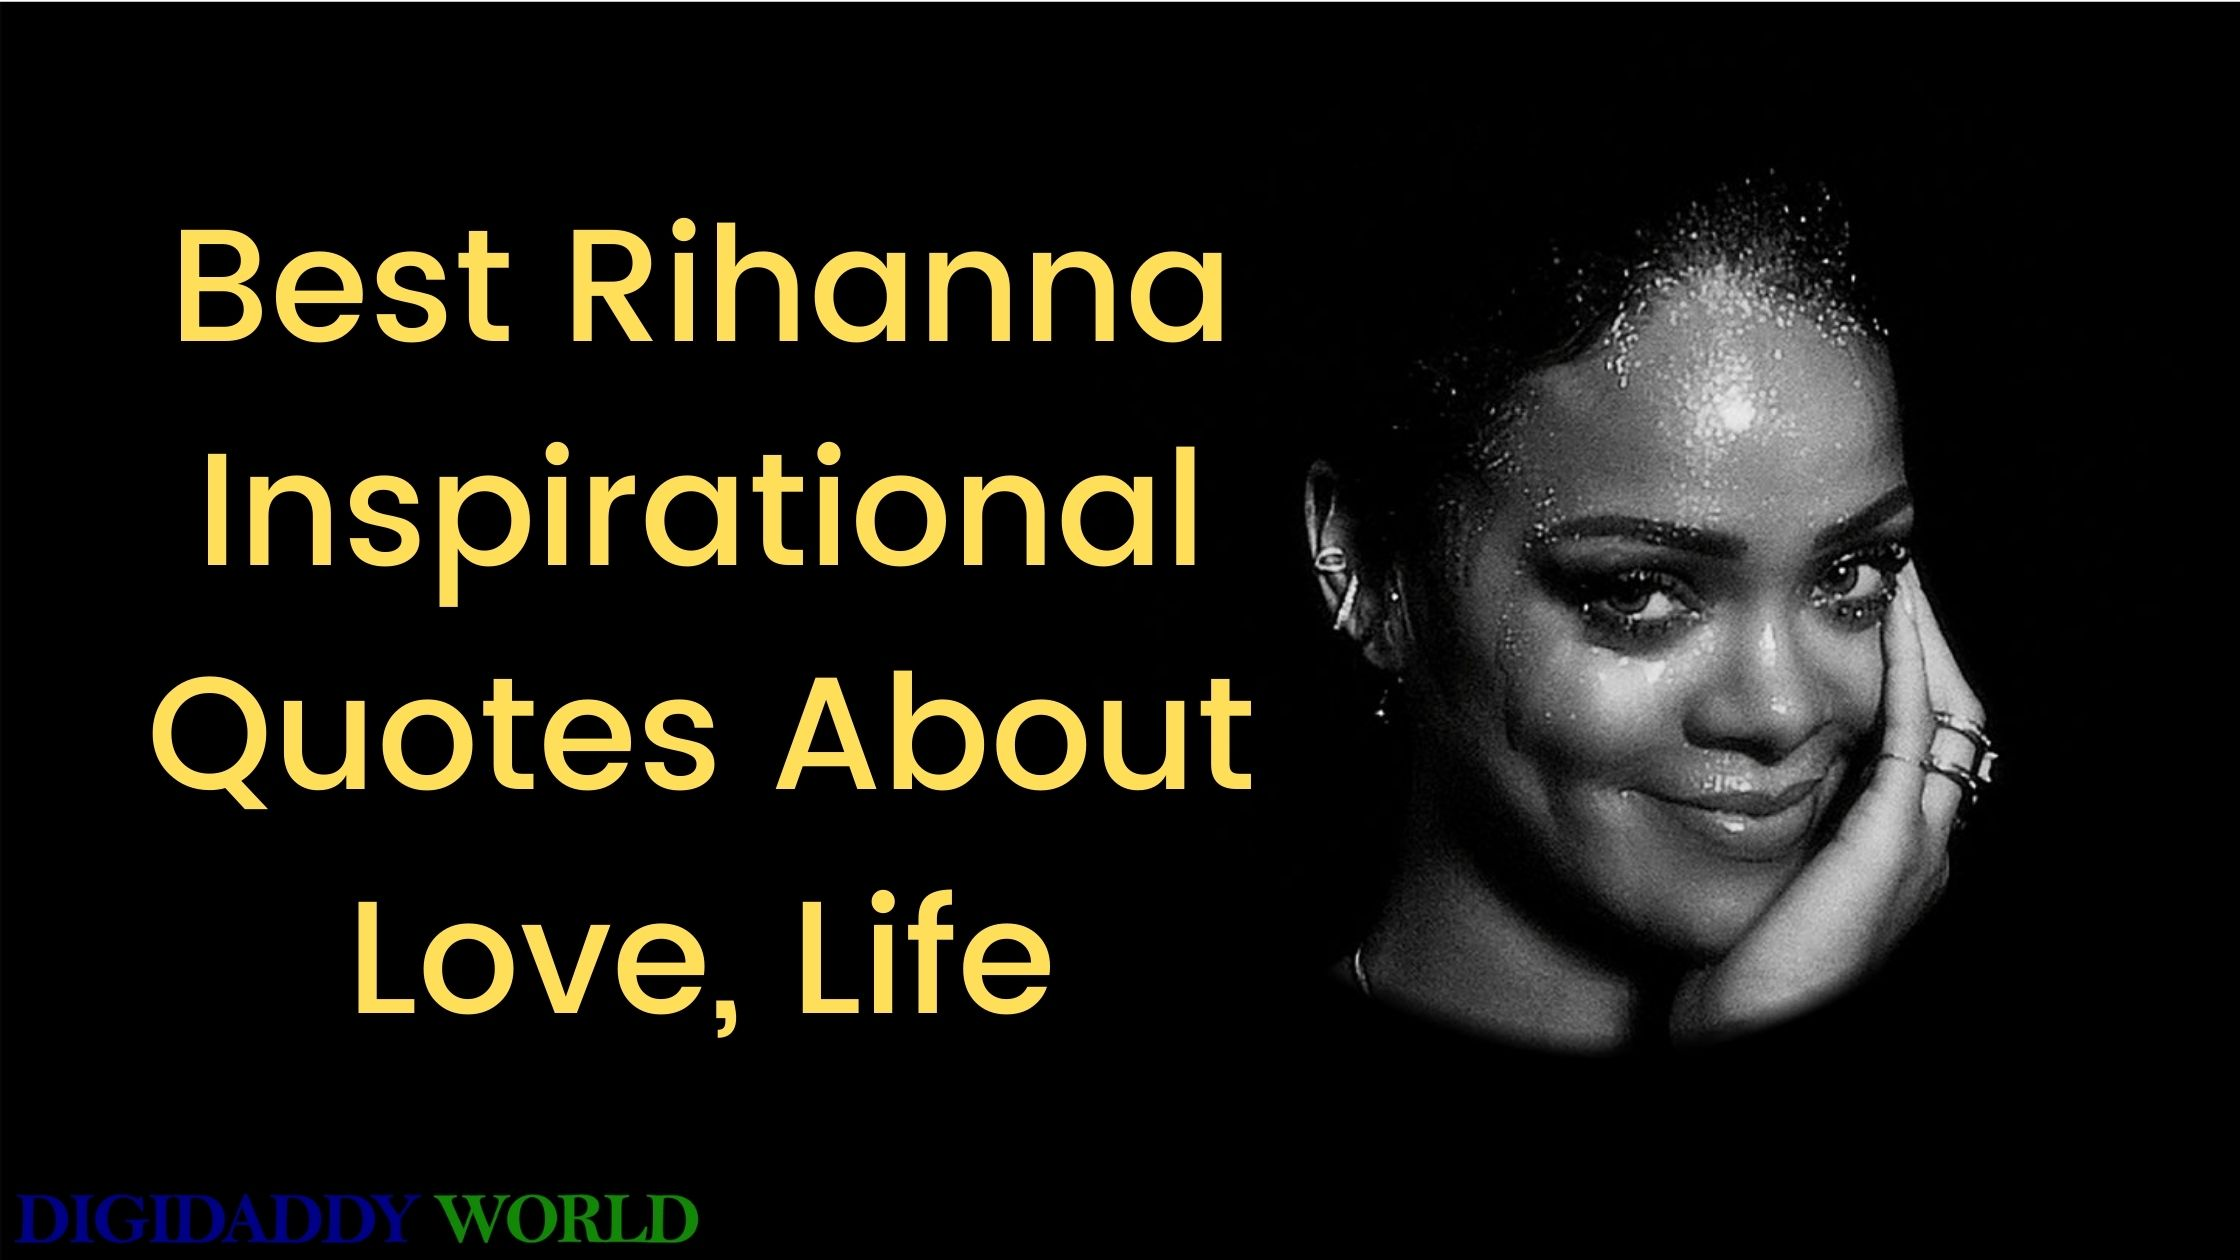 Best Rihanna Inspirational Quotes & Sayings About Love, Life